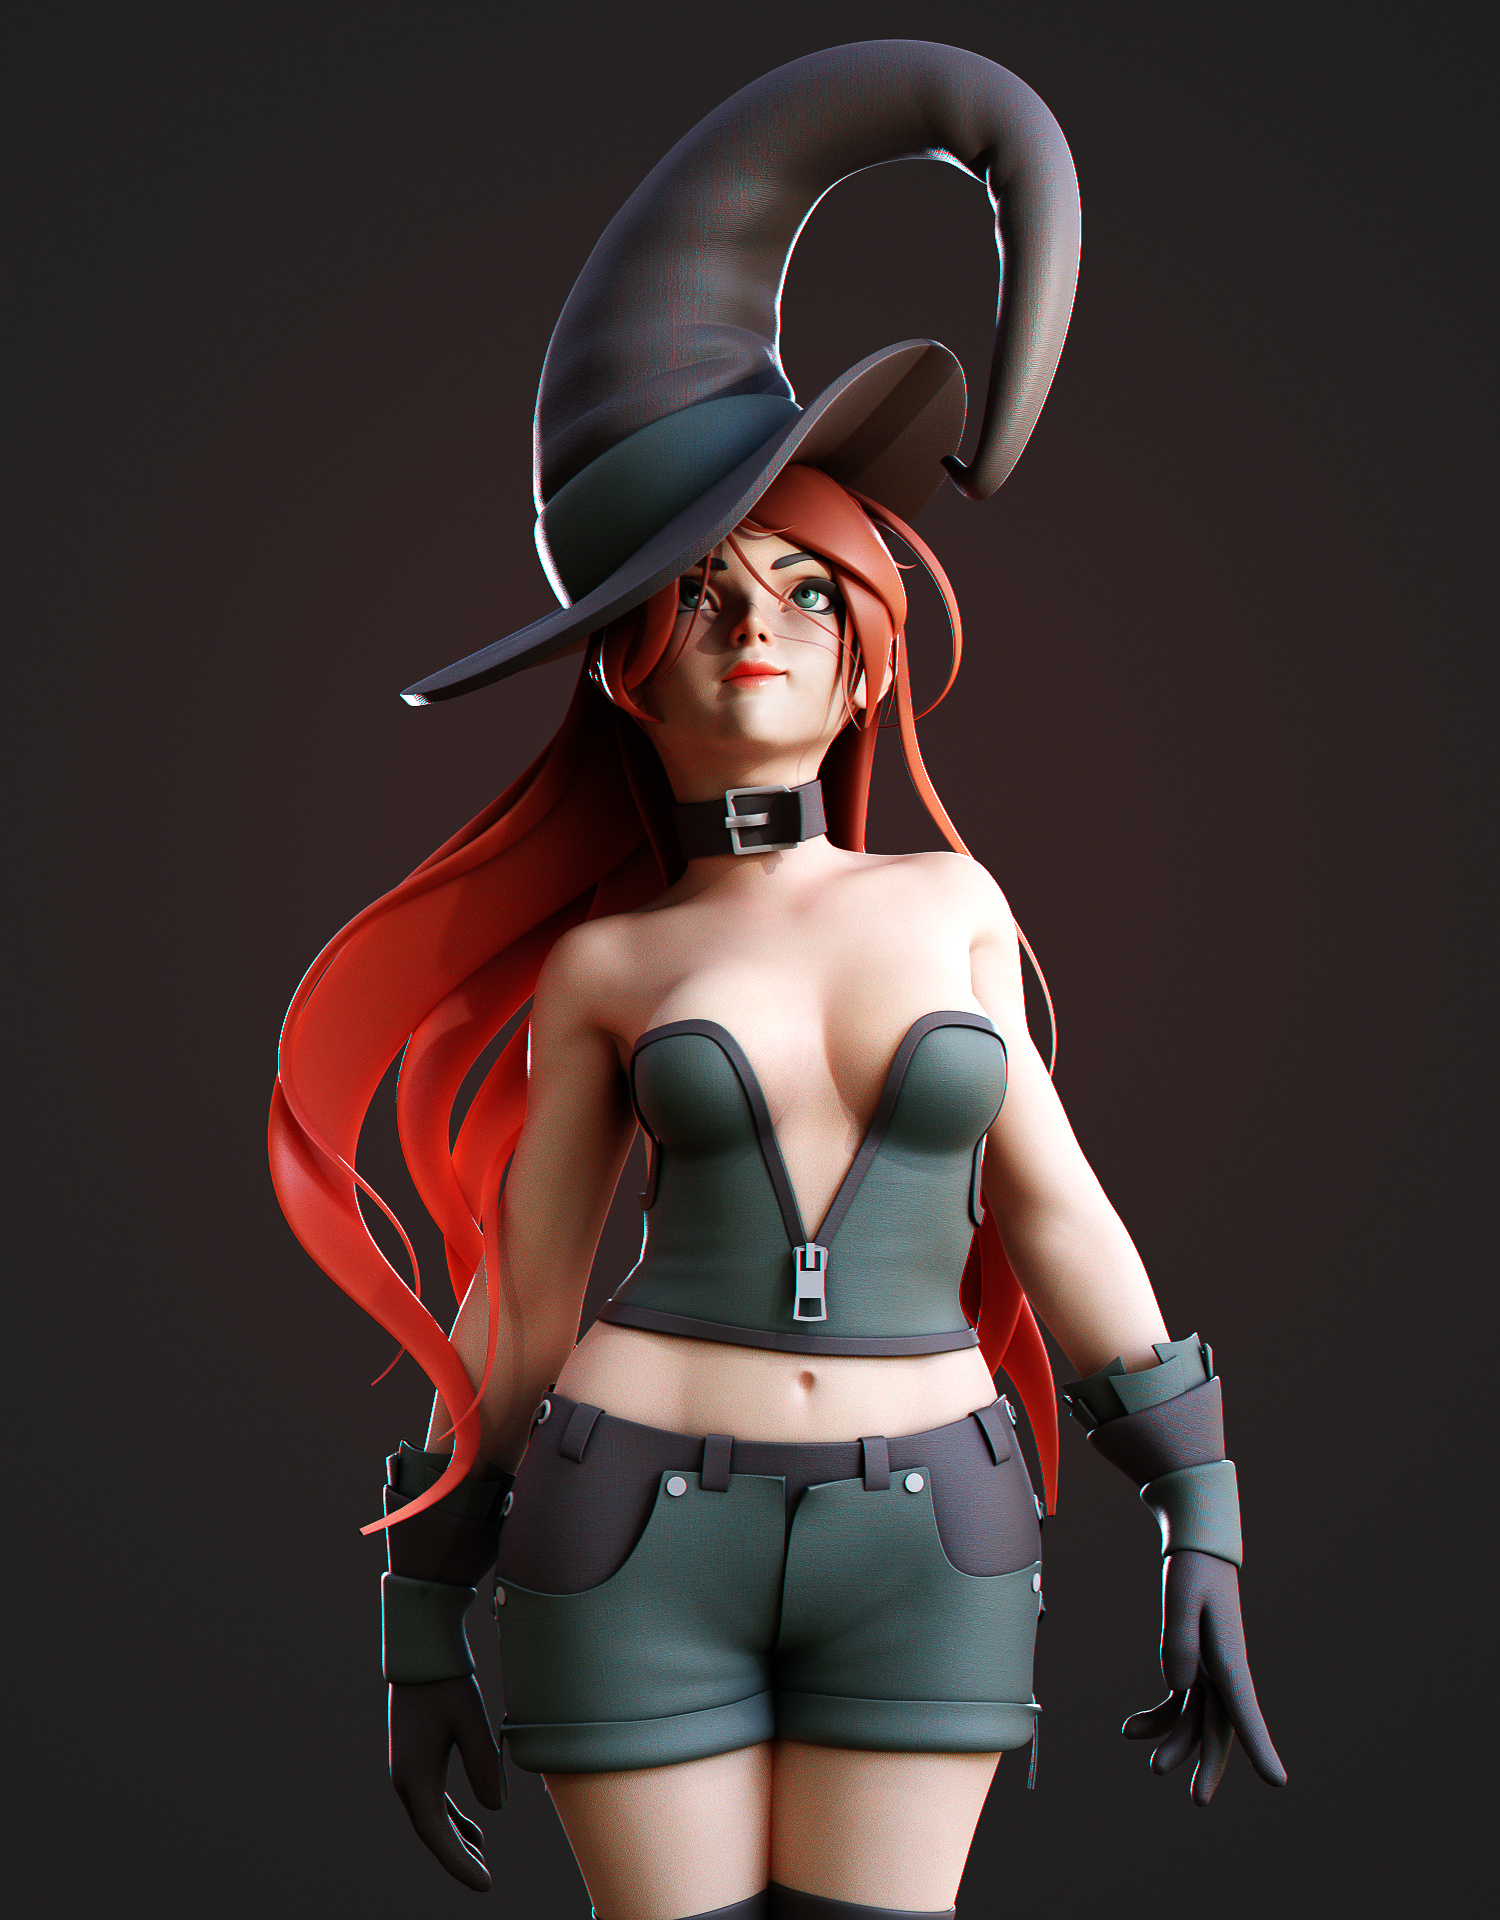 The Witch Character Creation - Sculpting, Texturing and